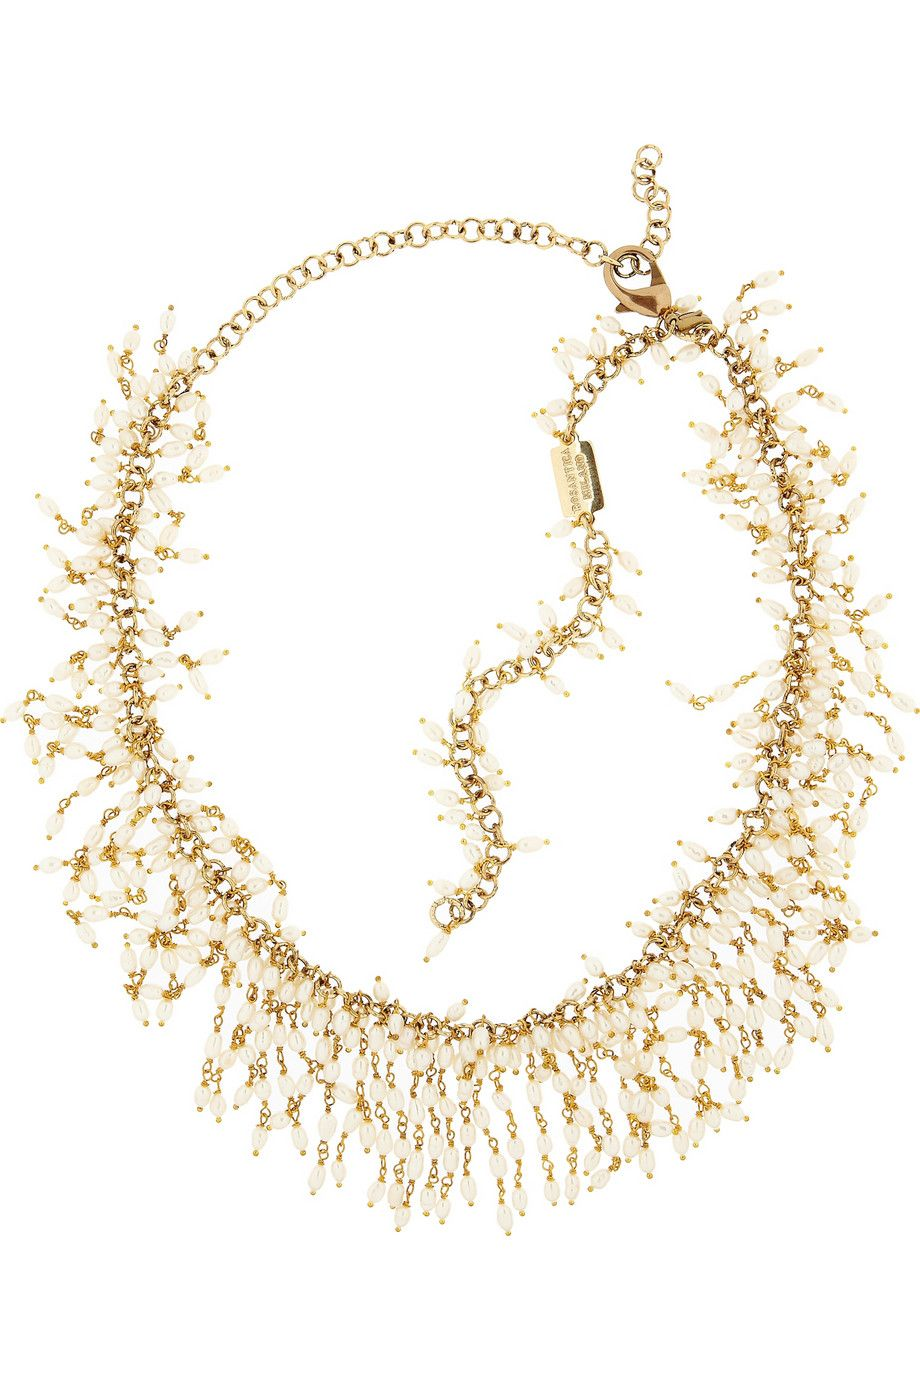 gold browsecoins karat chains